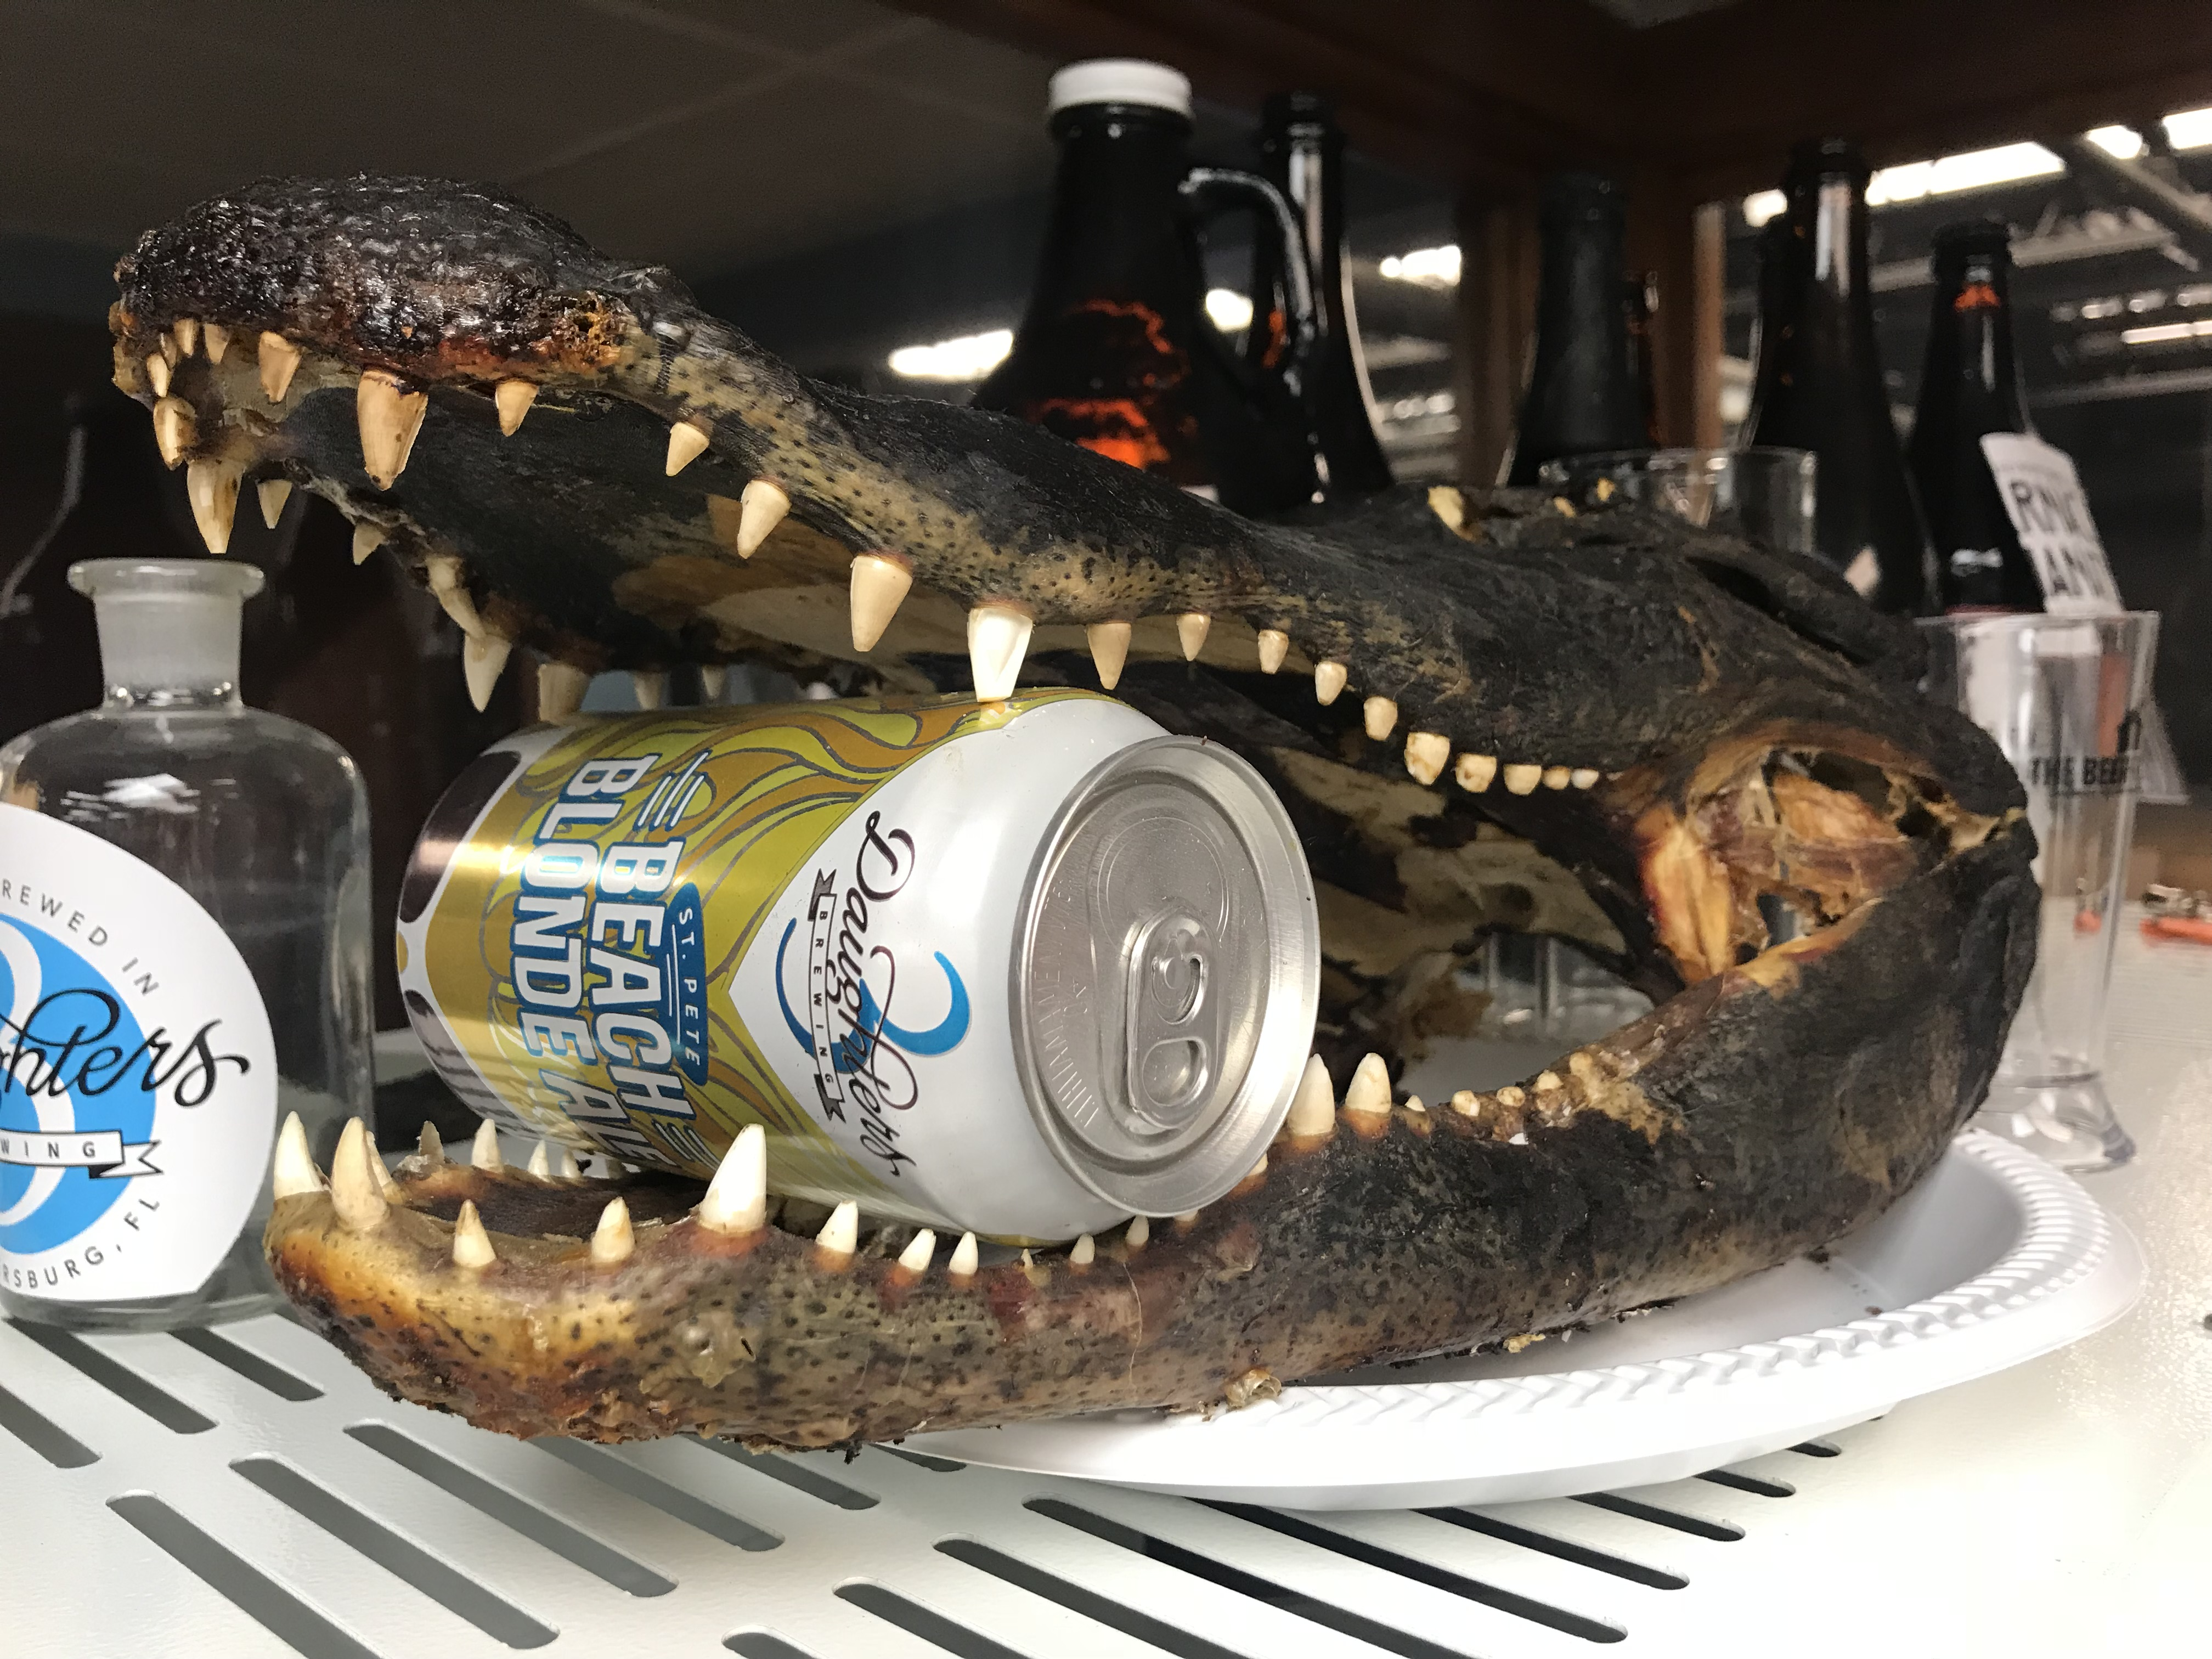 Gator in the beer lab